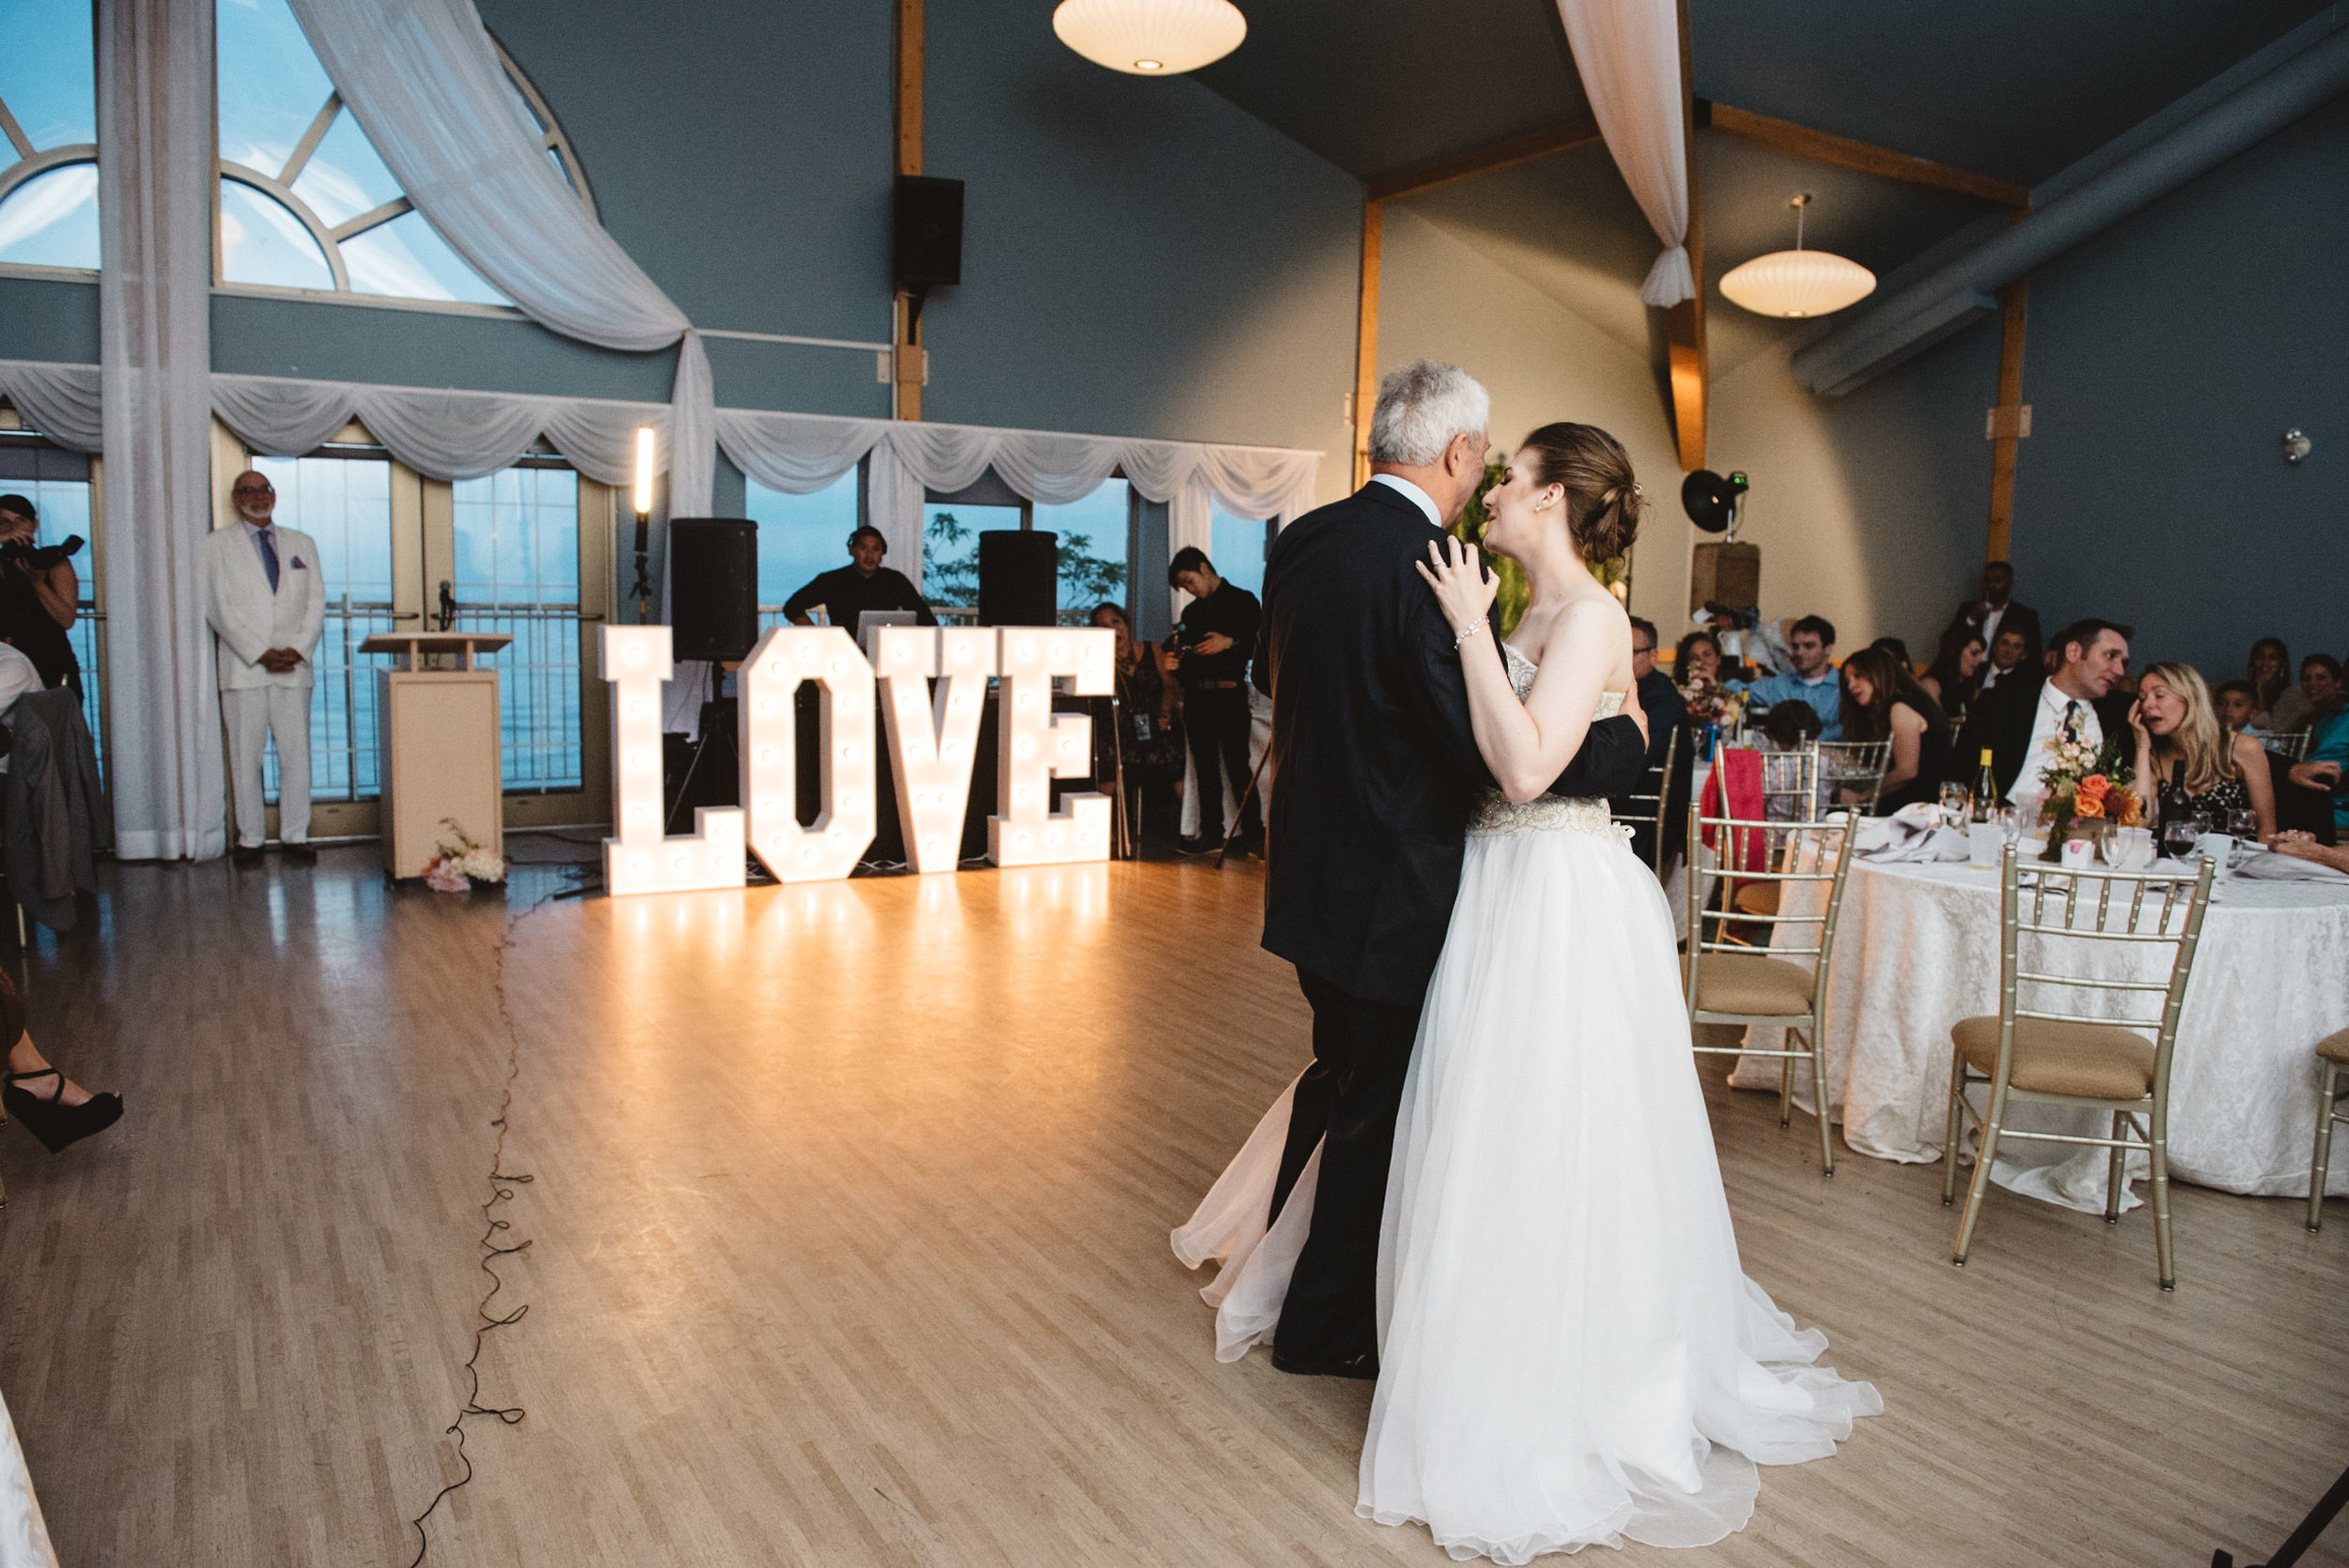 love sign rental with father and daughter